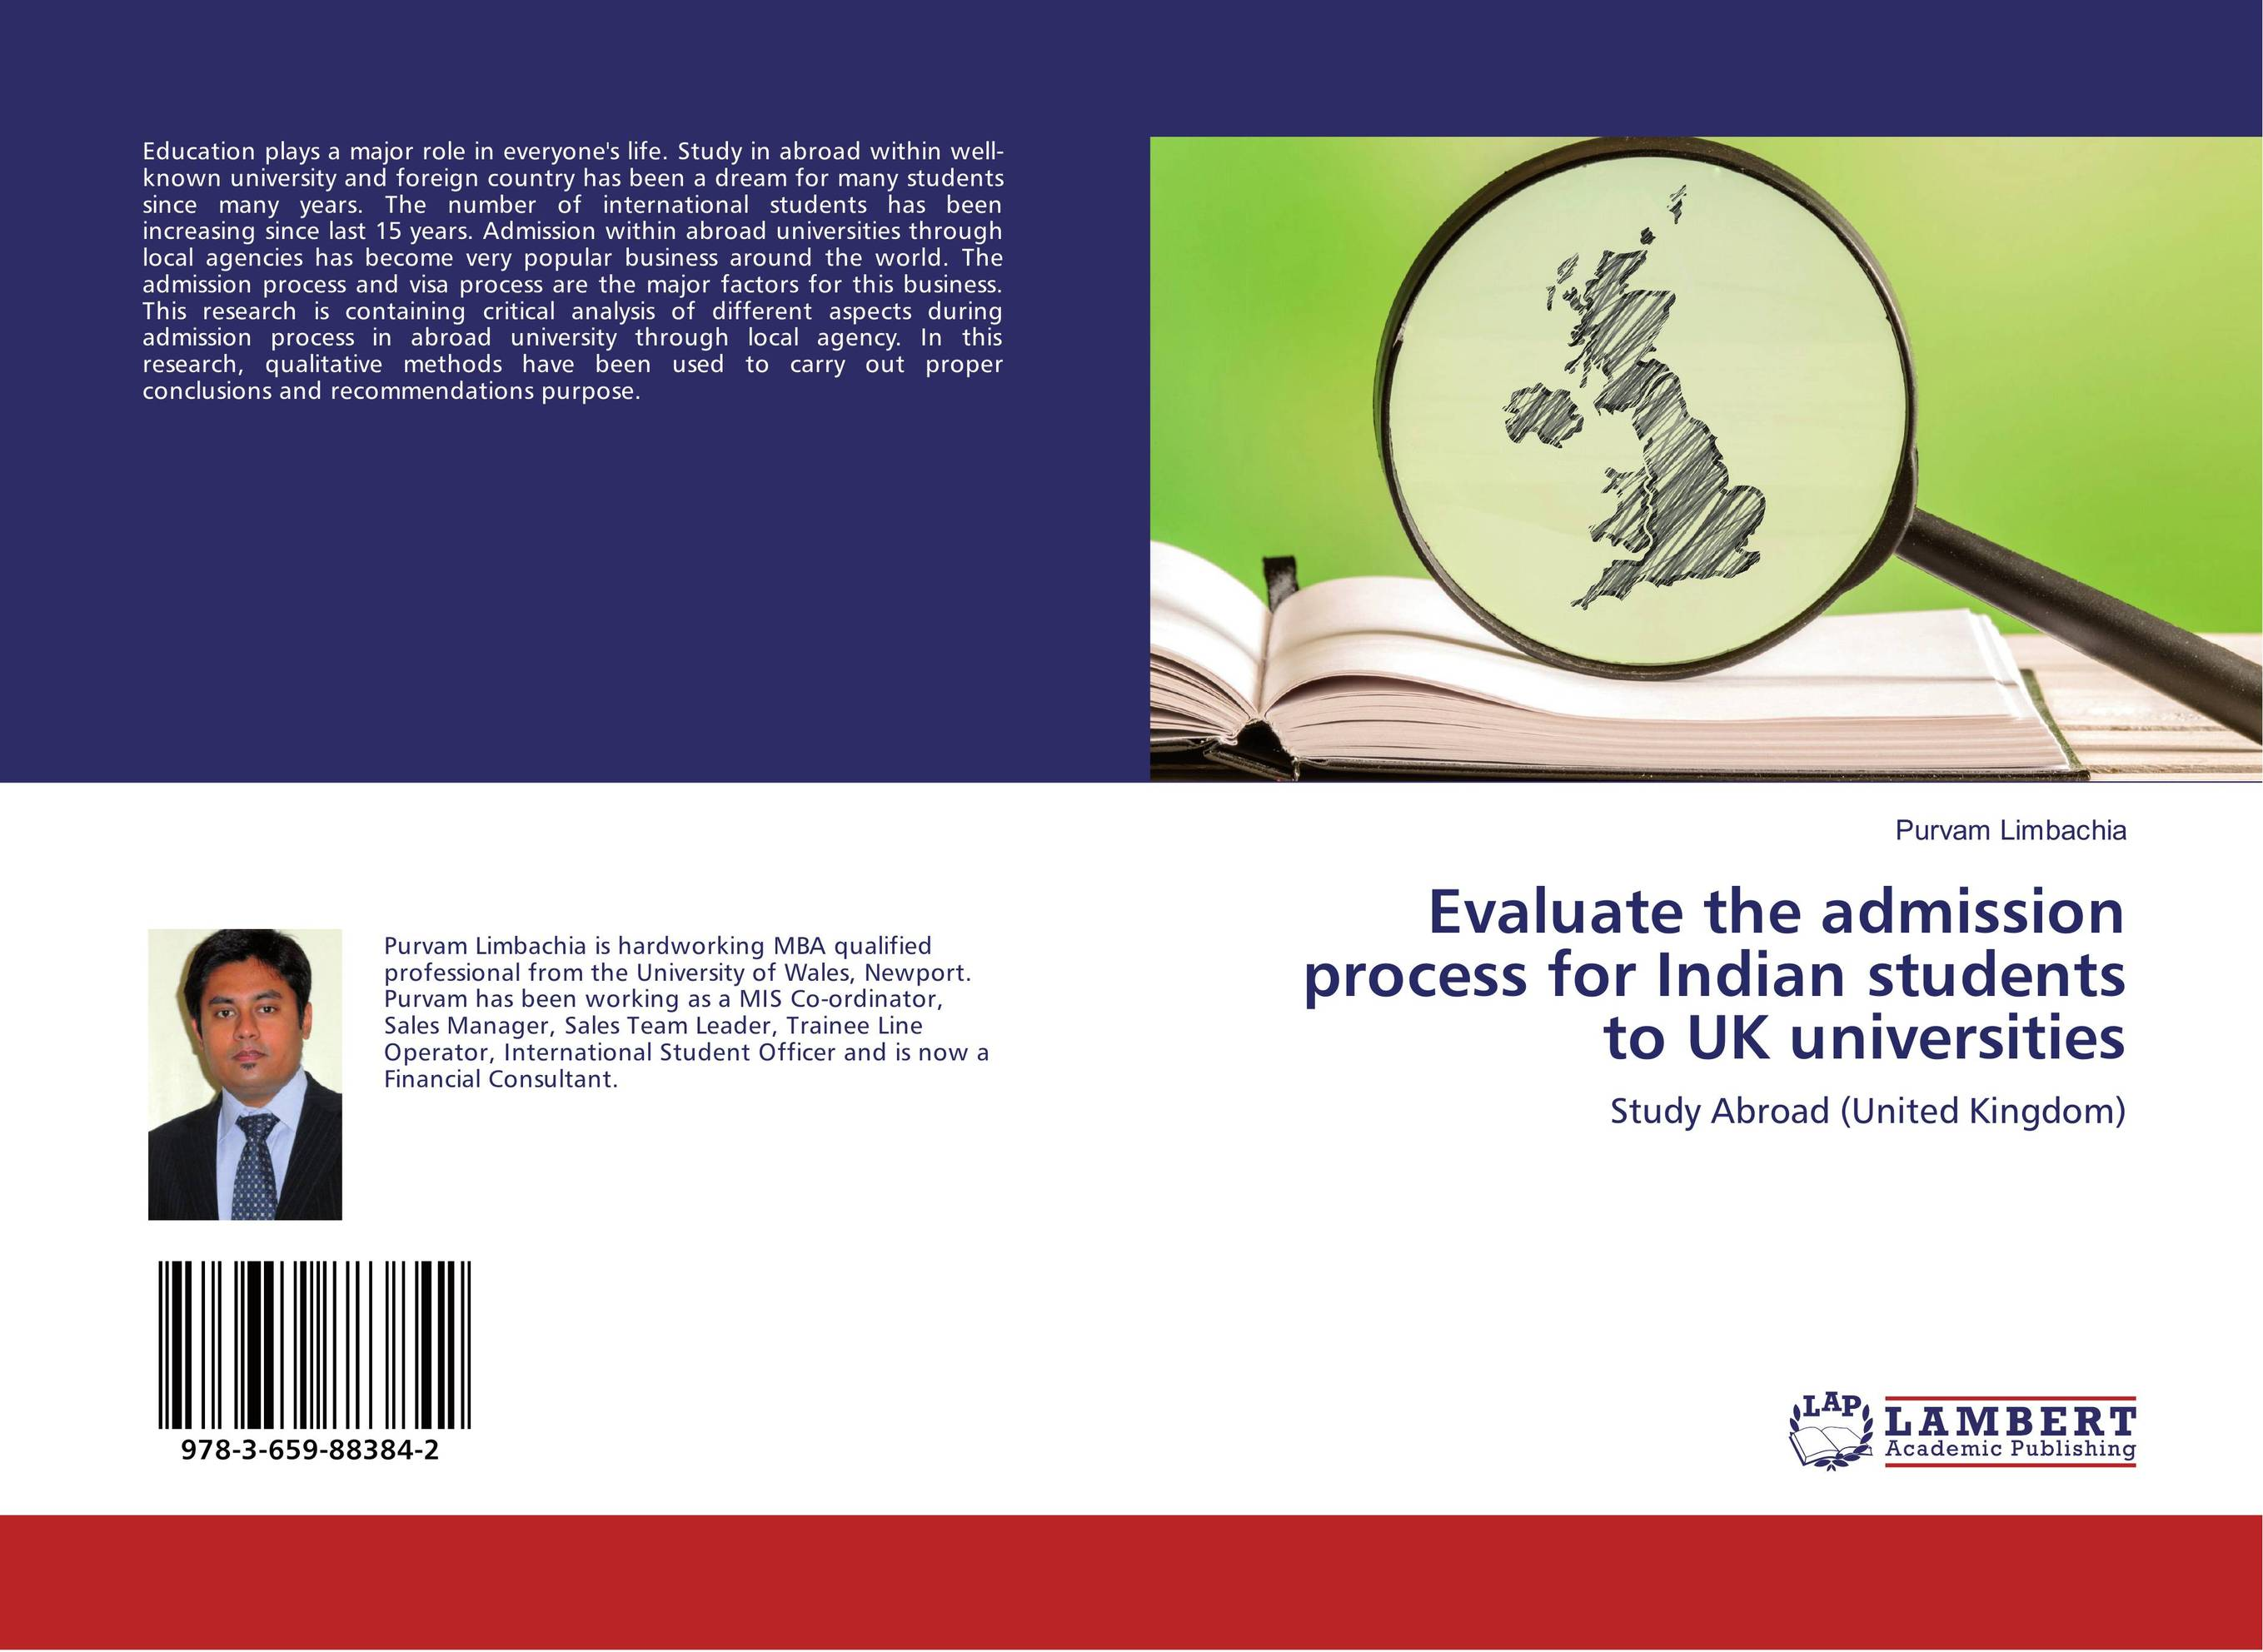 Evaluate the admission process for Indian students to UK universities